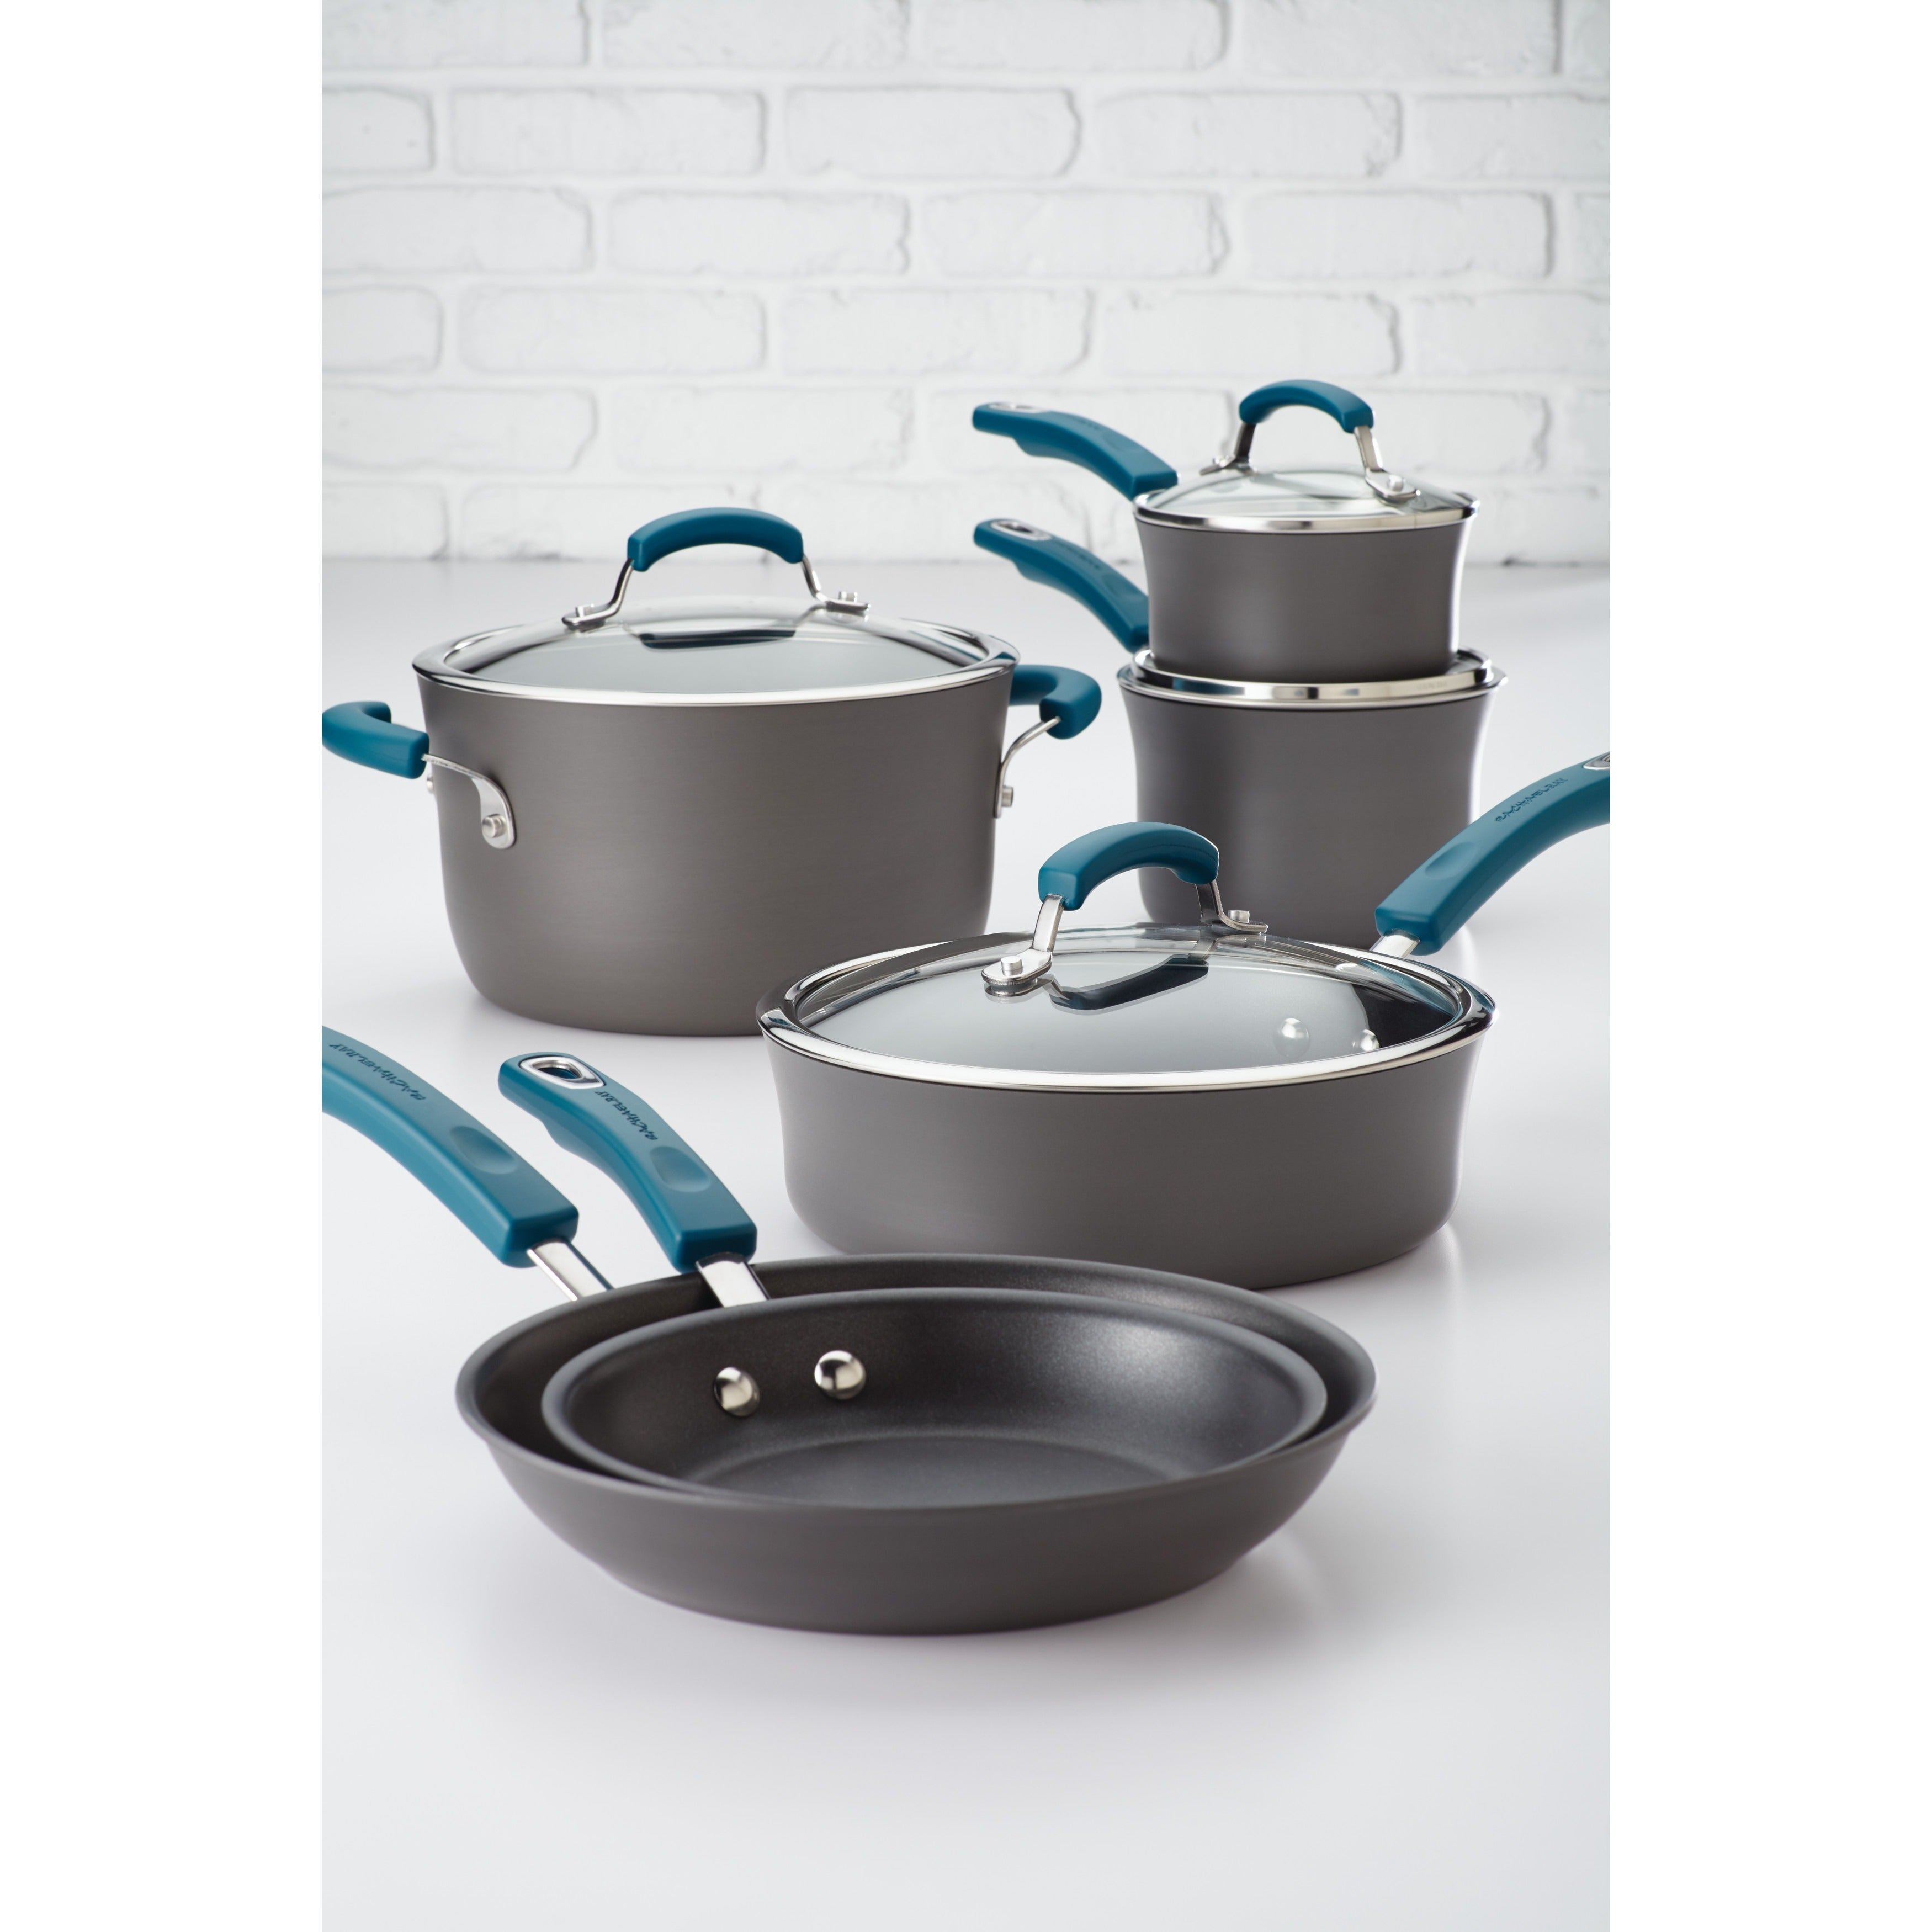 Rachael Ray Nonstick Aluminum Cookware Set with Blue Hand...